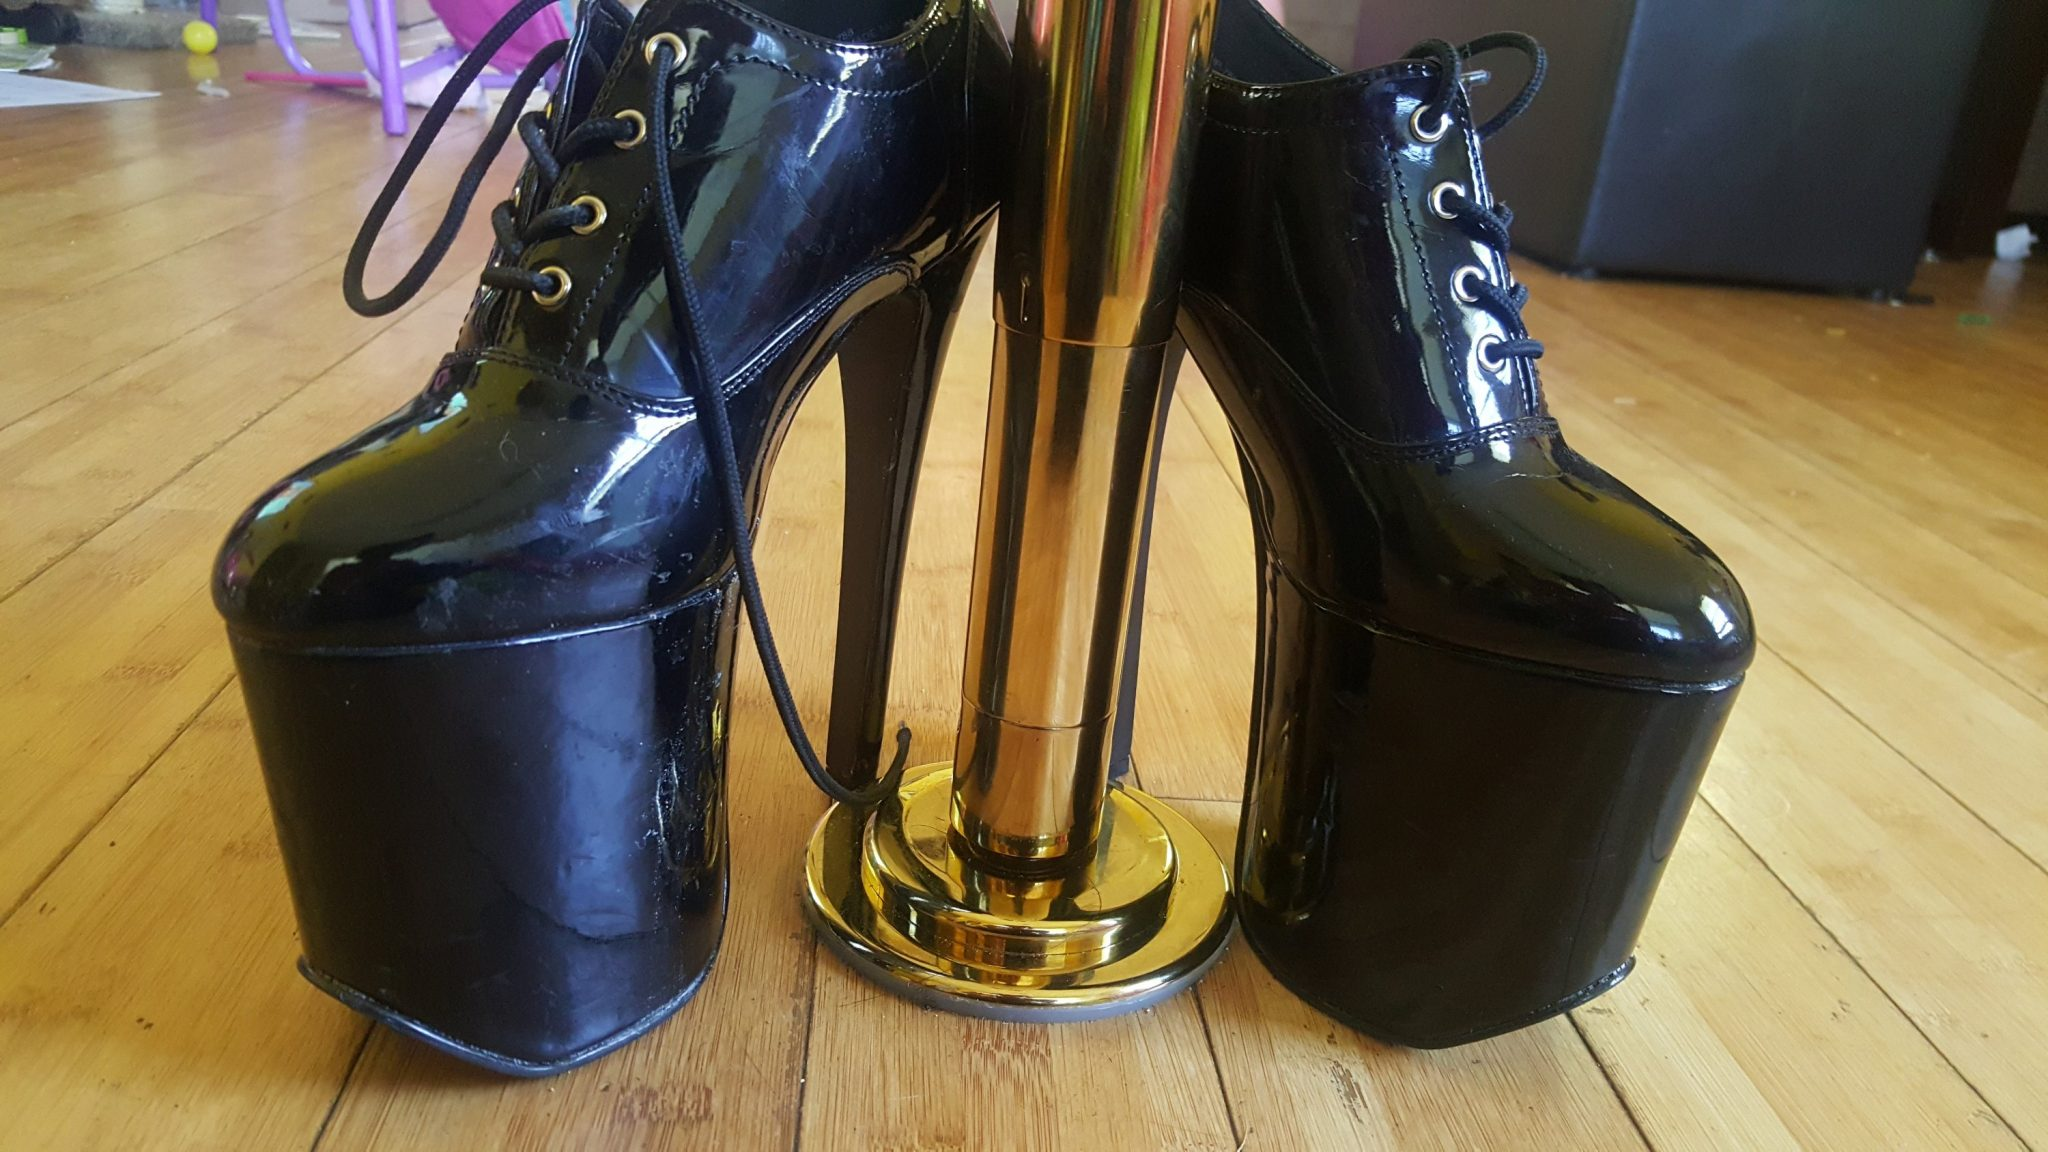 Bring Out Your Inner Sex Goddess for Pole and Exotic Dancing With These Platform Heels